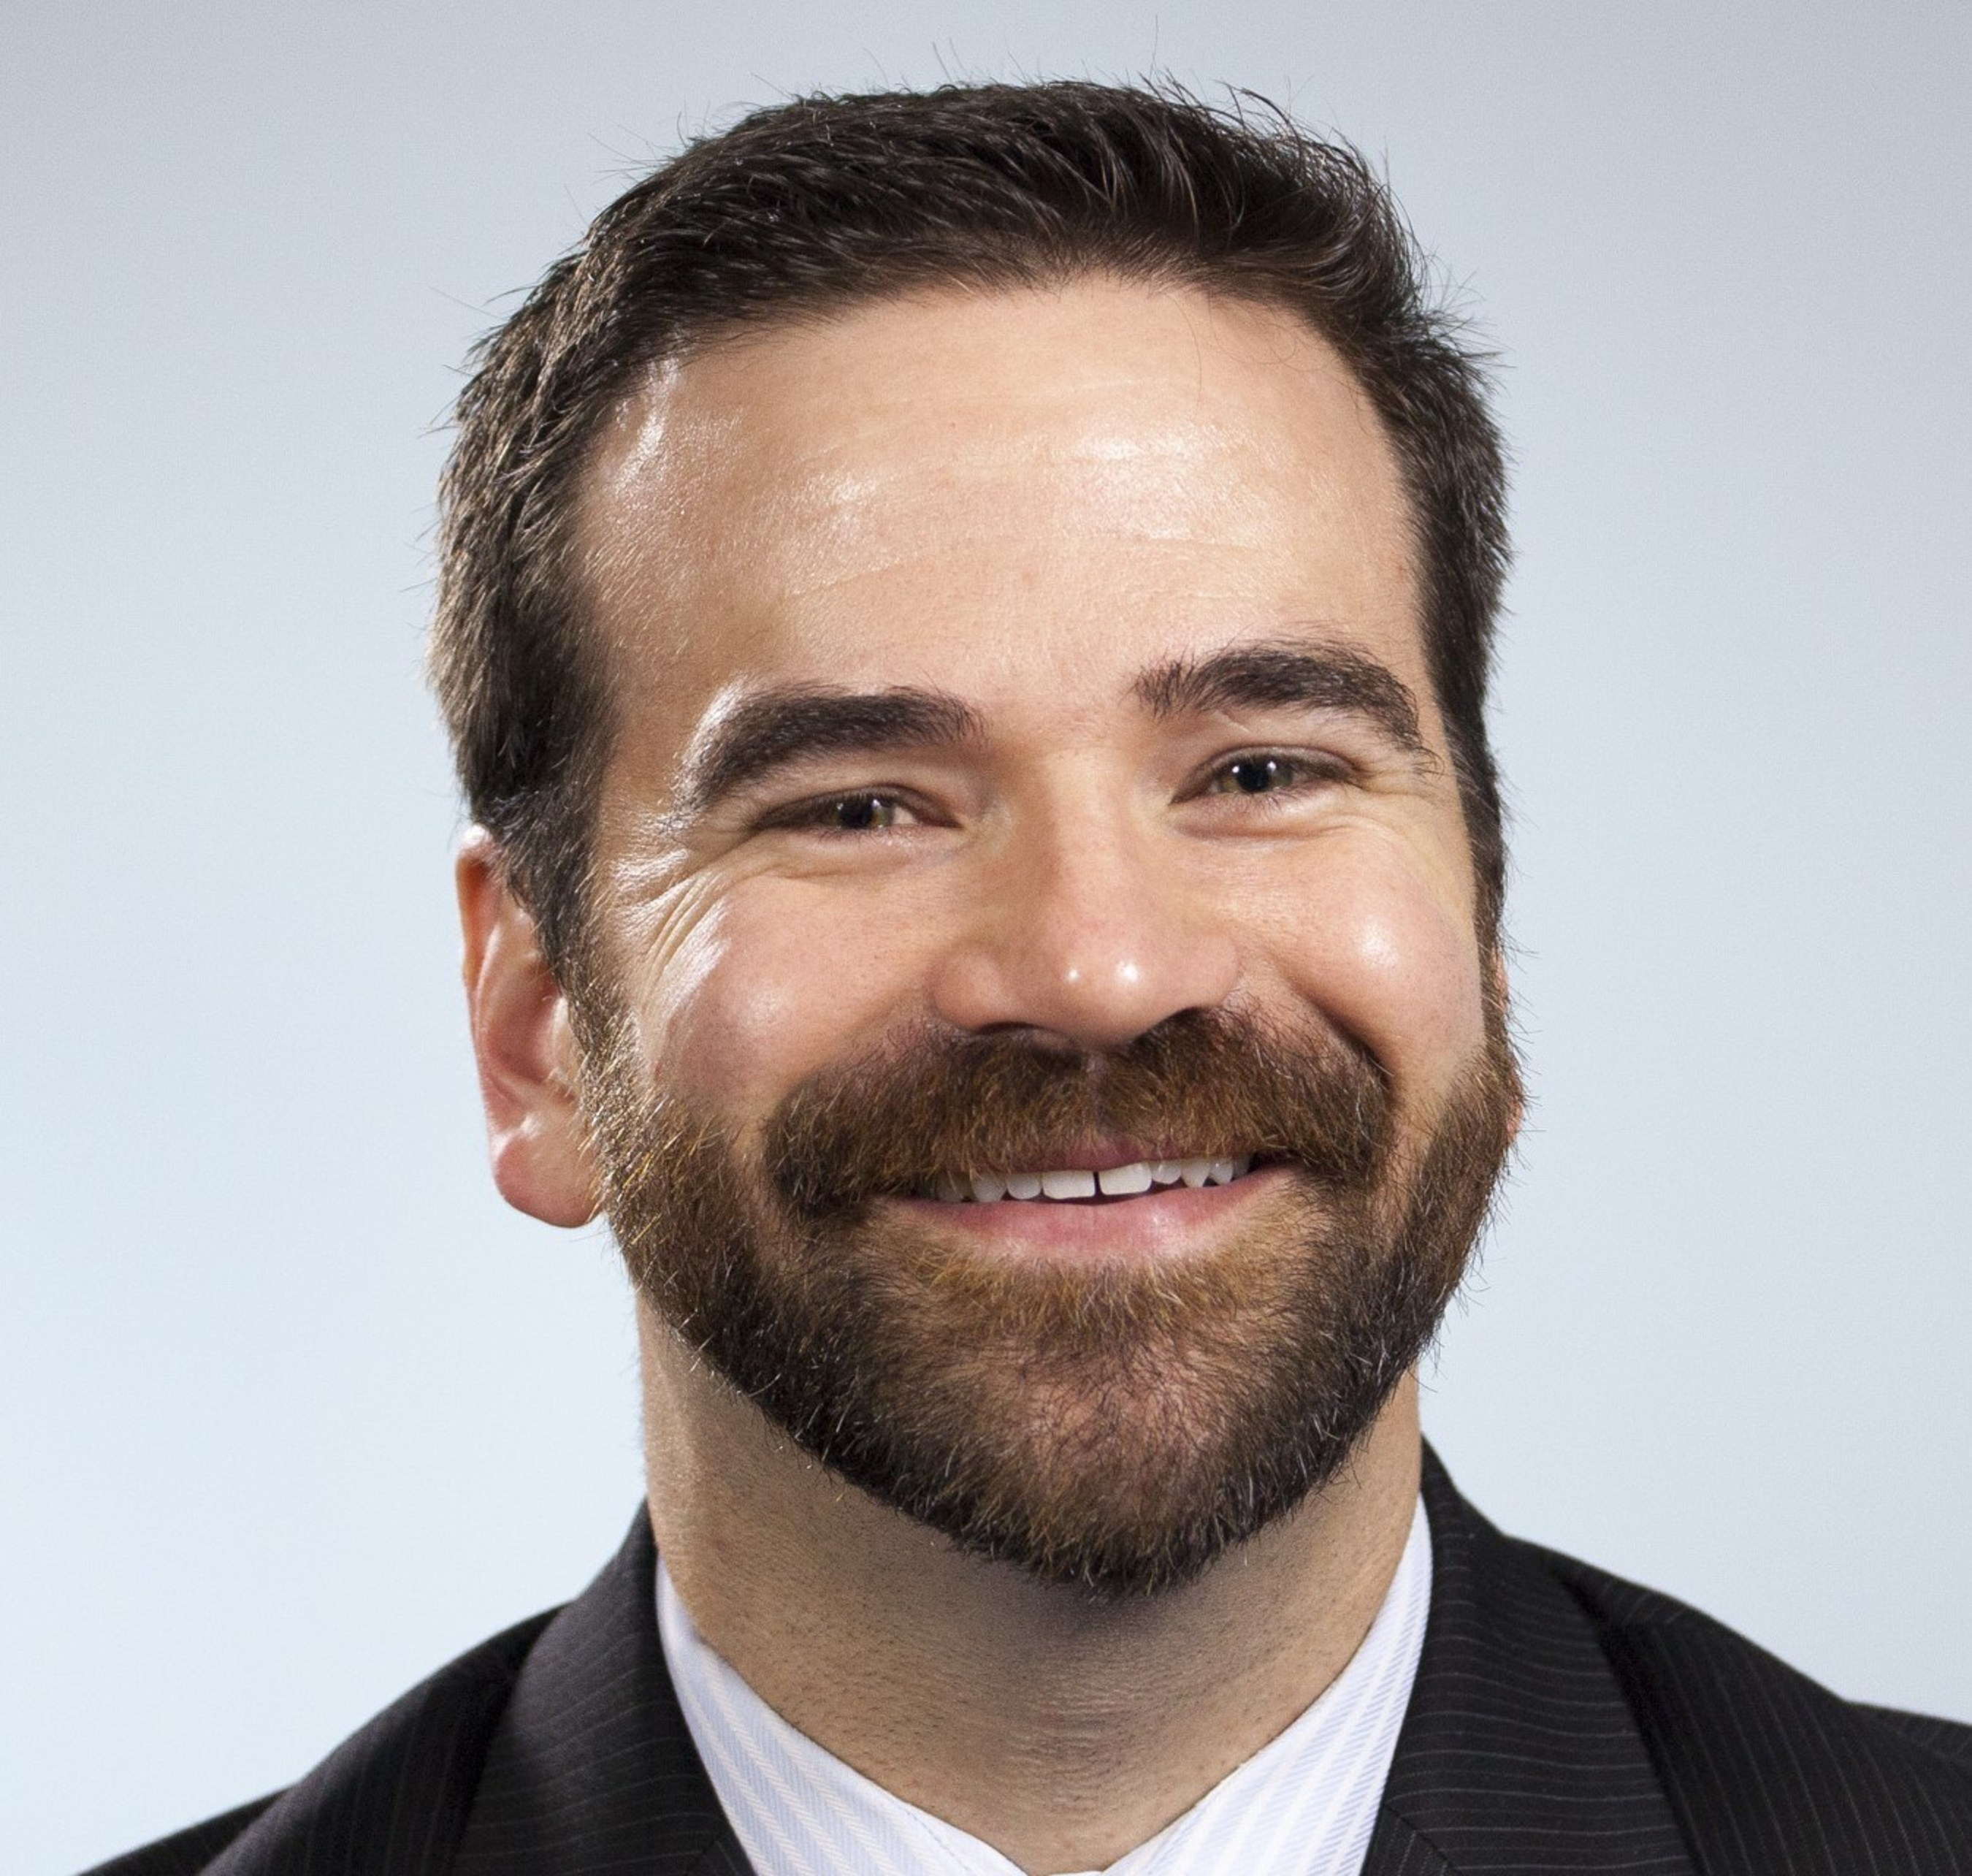 Matthew Zubiller has been named AMN Senior Vice President, Corporate Strategy, a new role that will help lead the continued development and expansion of AMN Healthcare